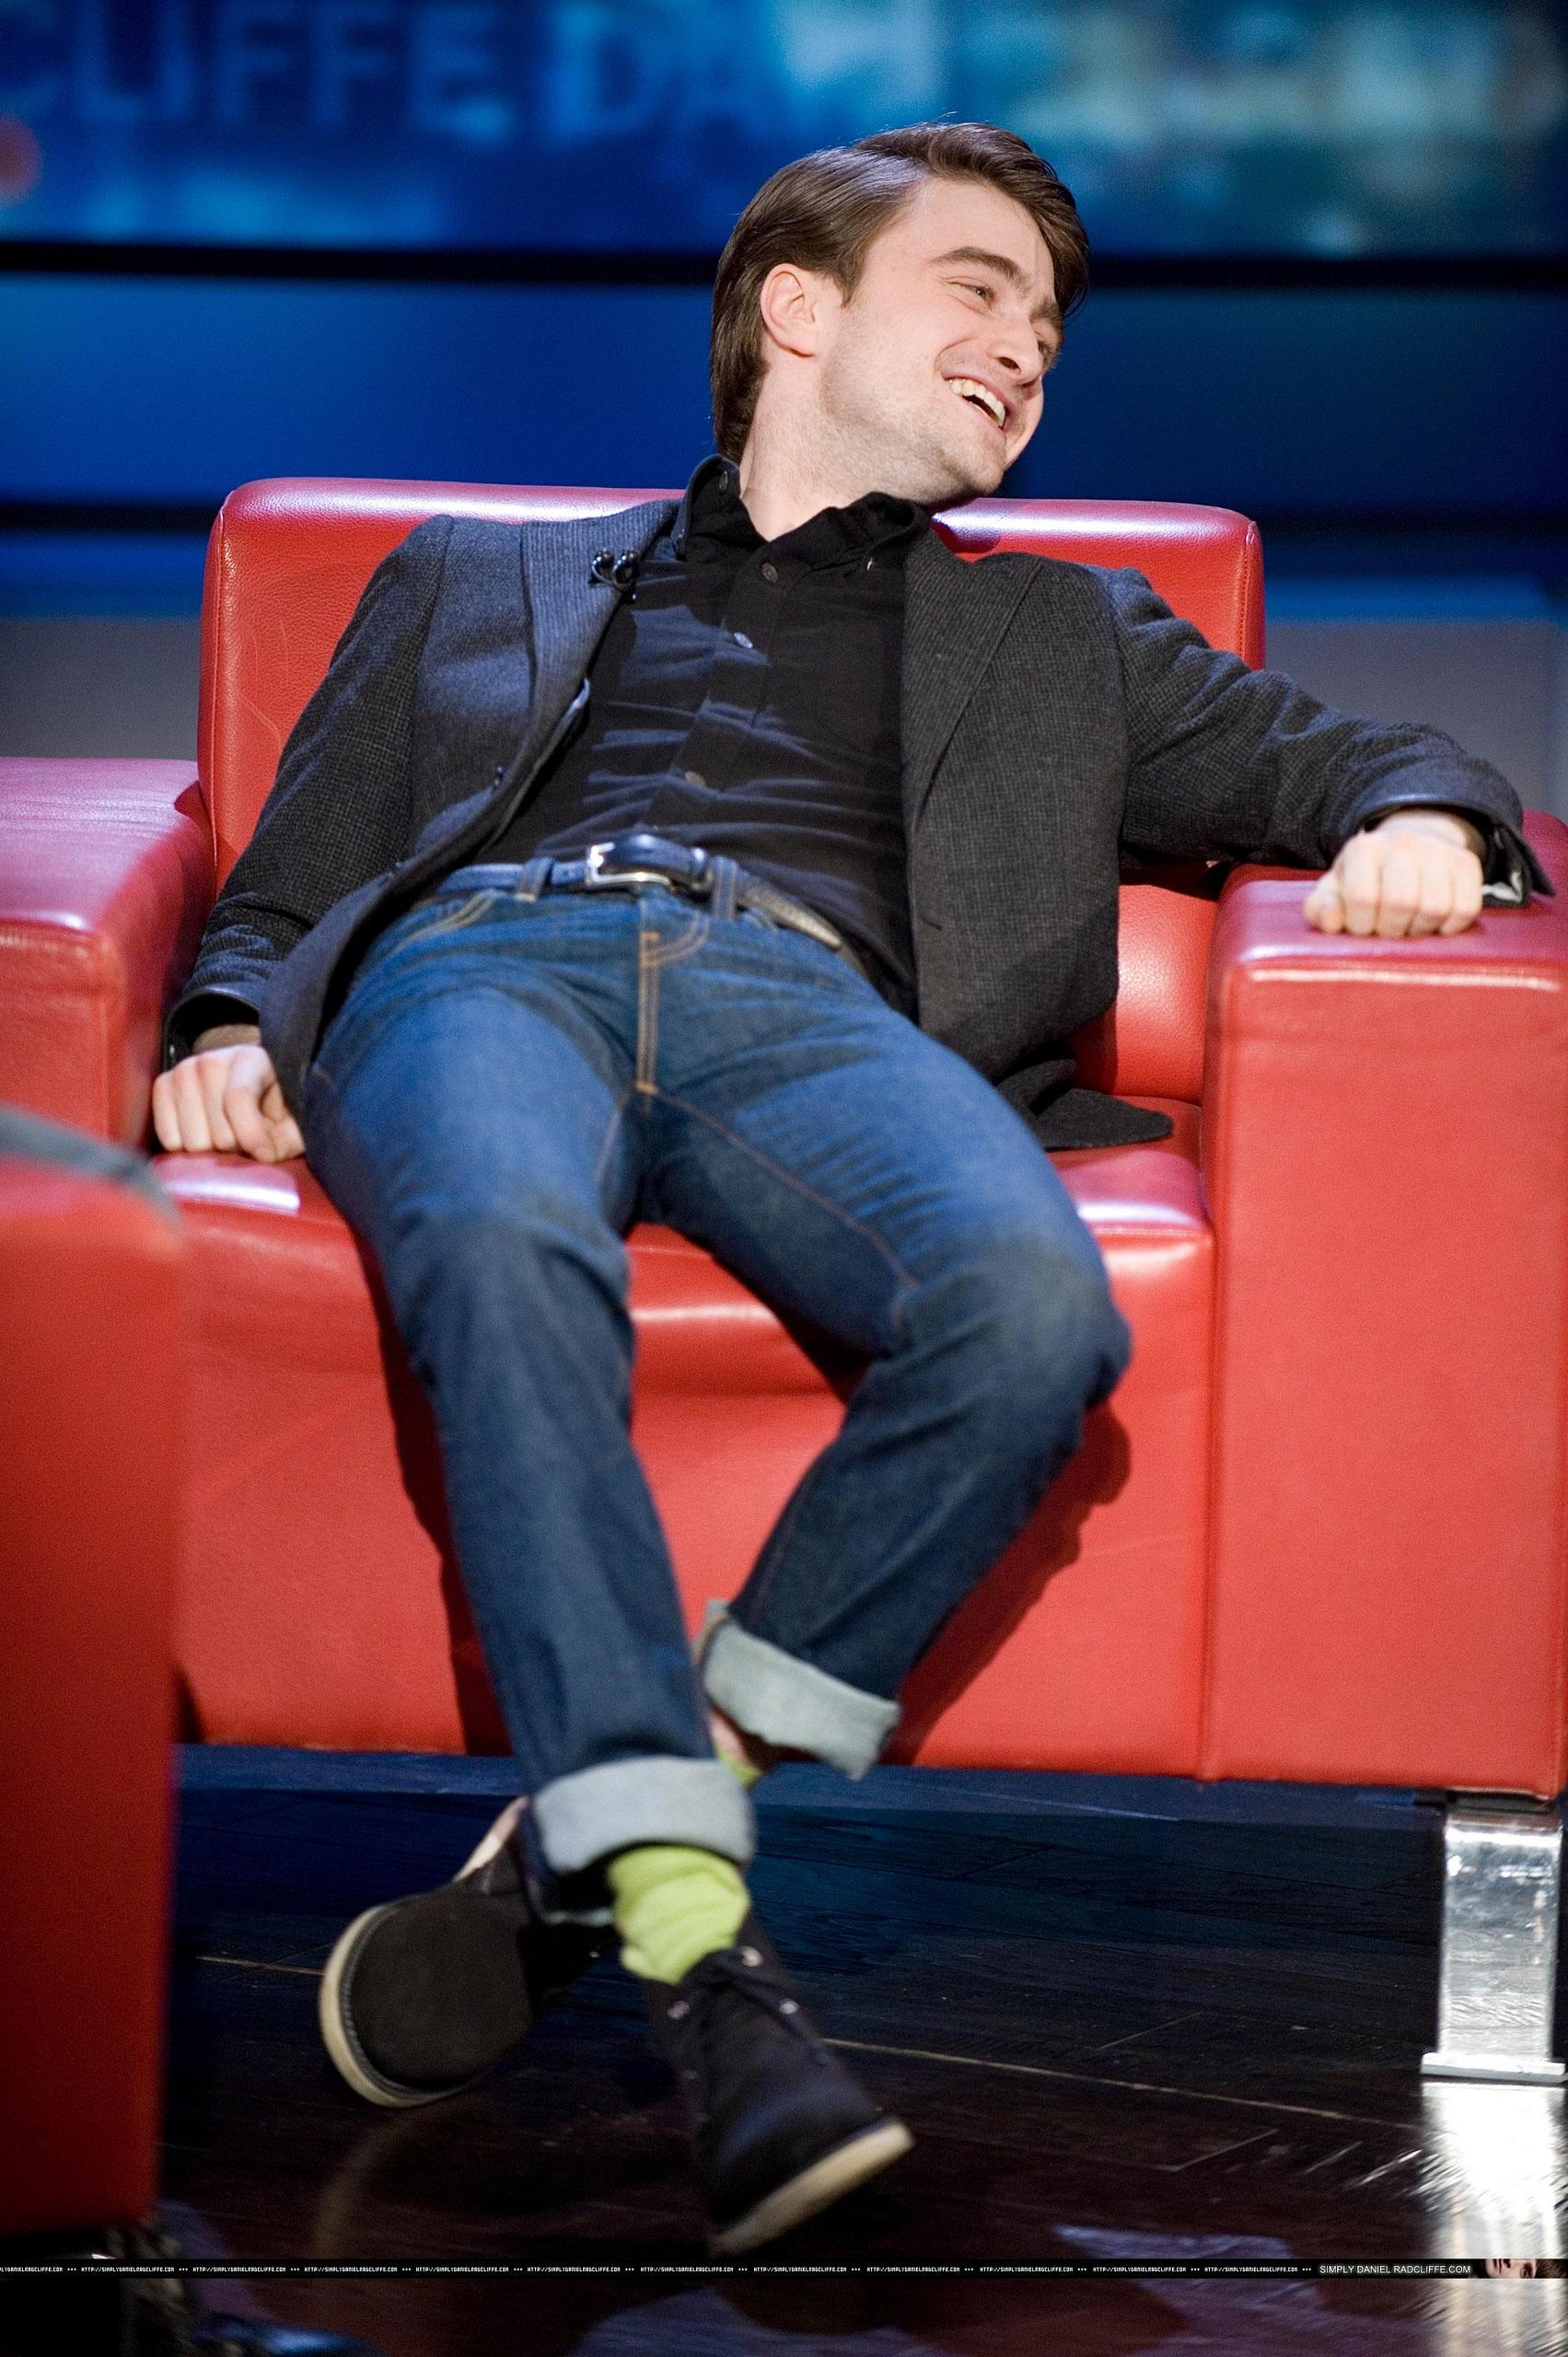 George Stroumboulopoulos Tonight - January 27, 2012 - HQ